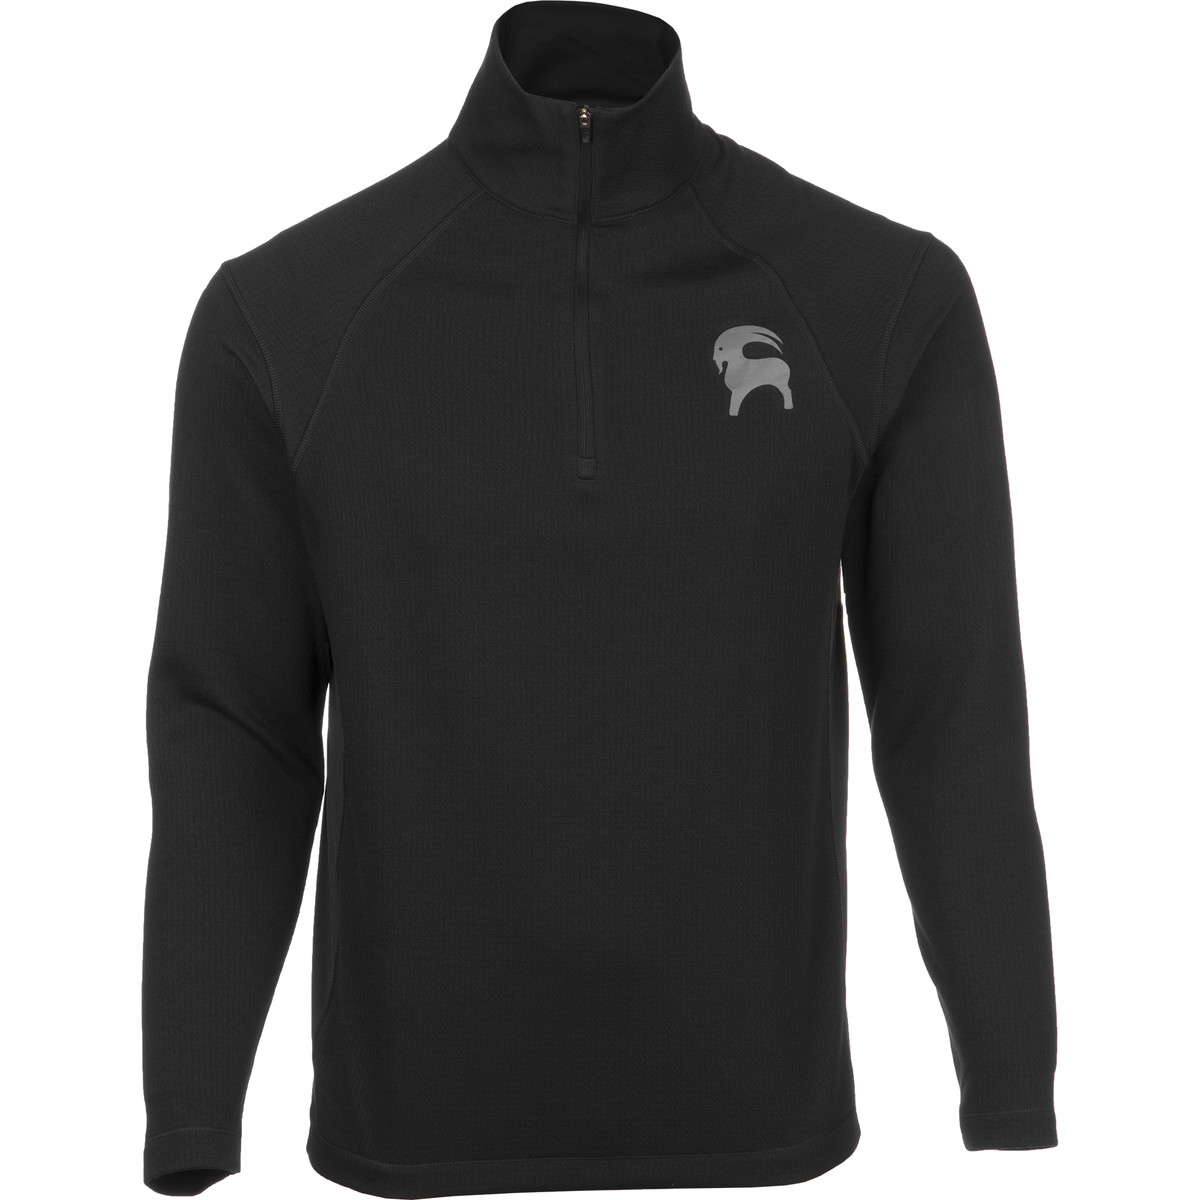 Backcountry.com Midweight Zip Neck Top